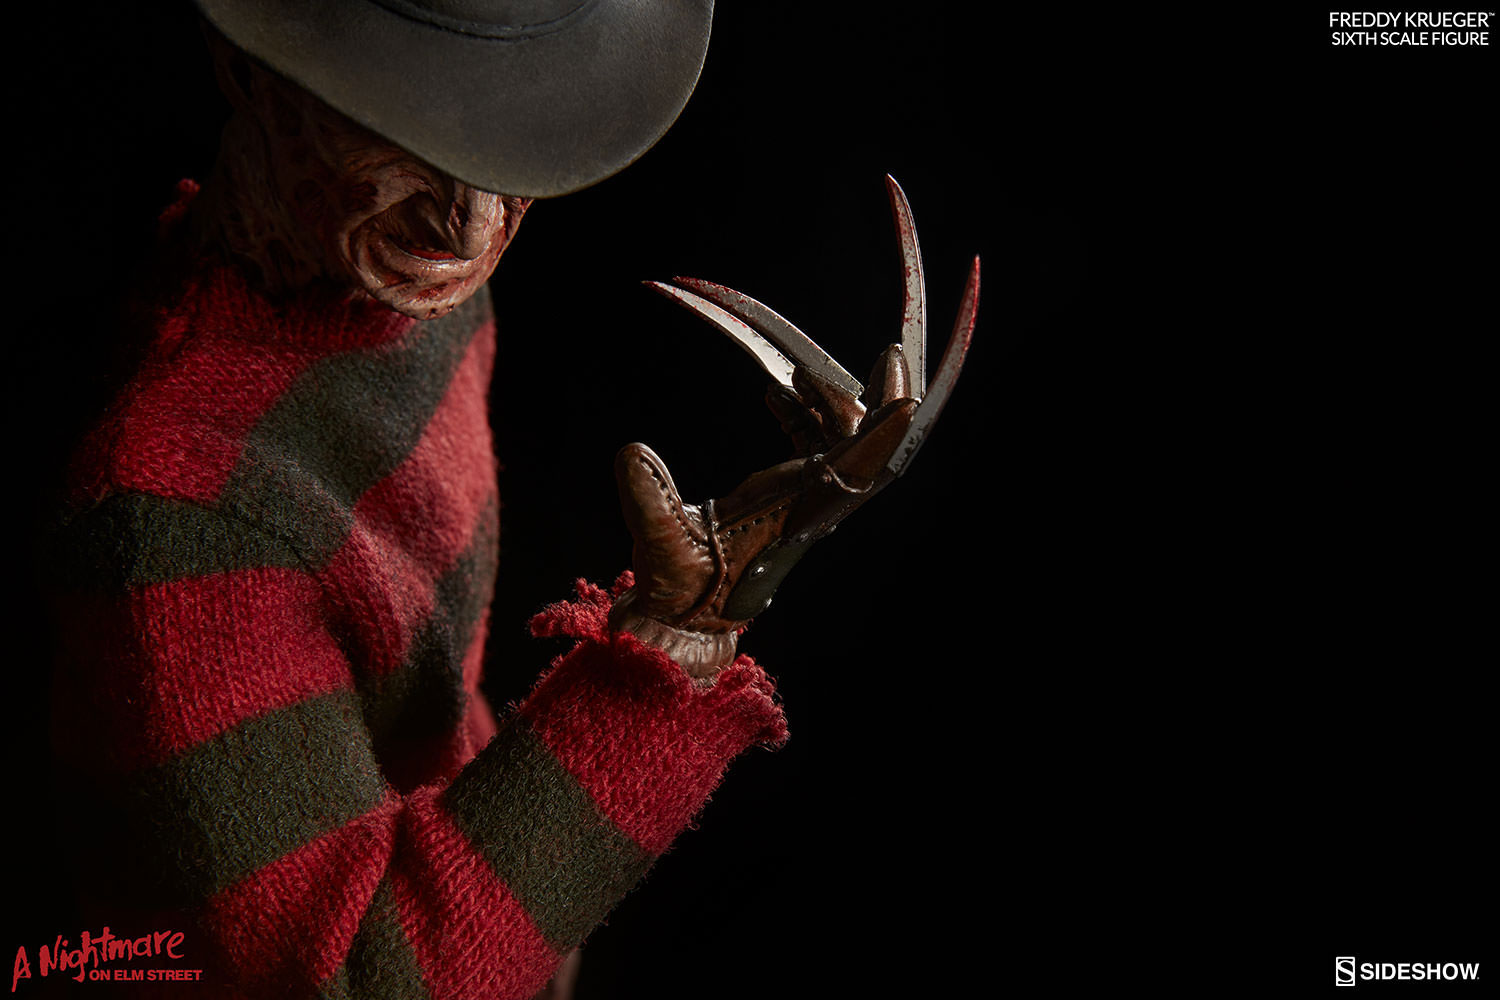 sideshow-nightmare-on-elm-street-freddy-krueger-sixth-scale-fgure-8